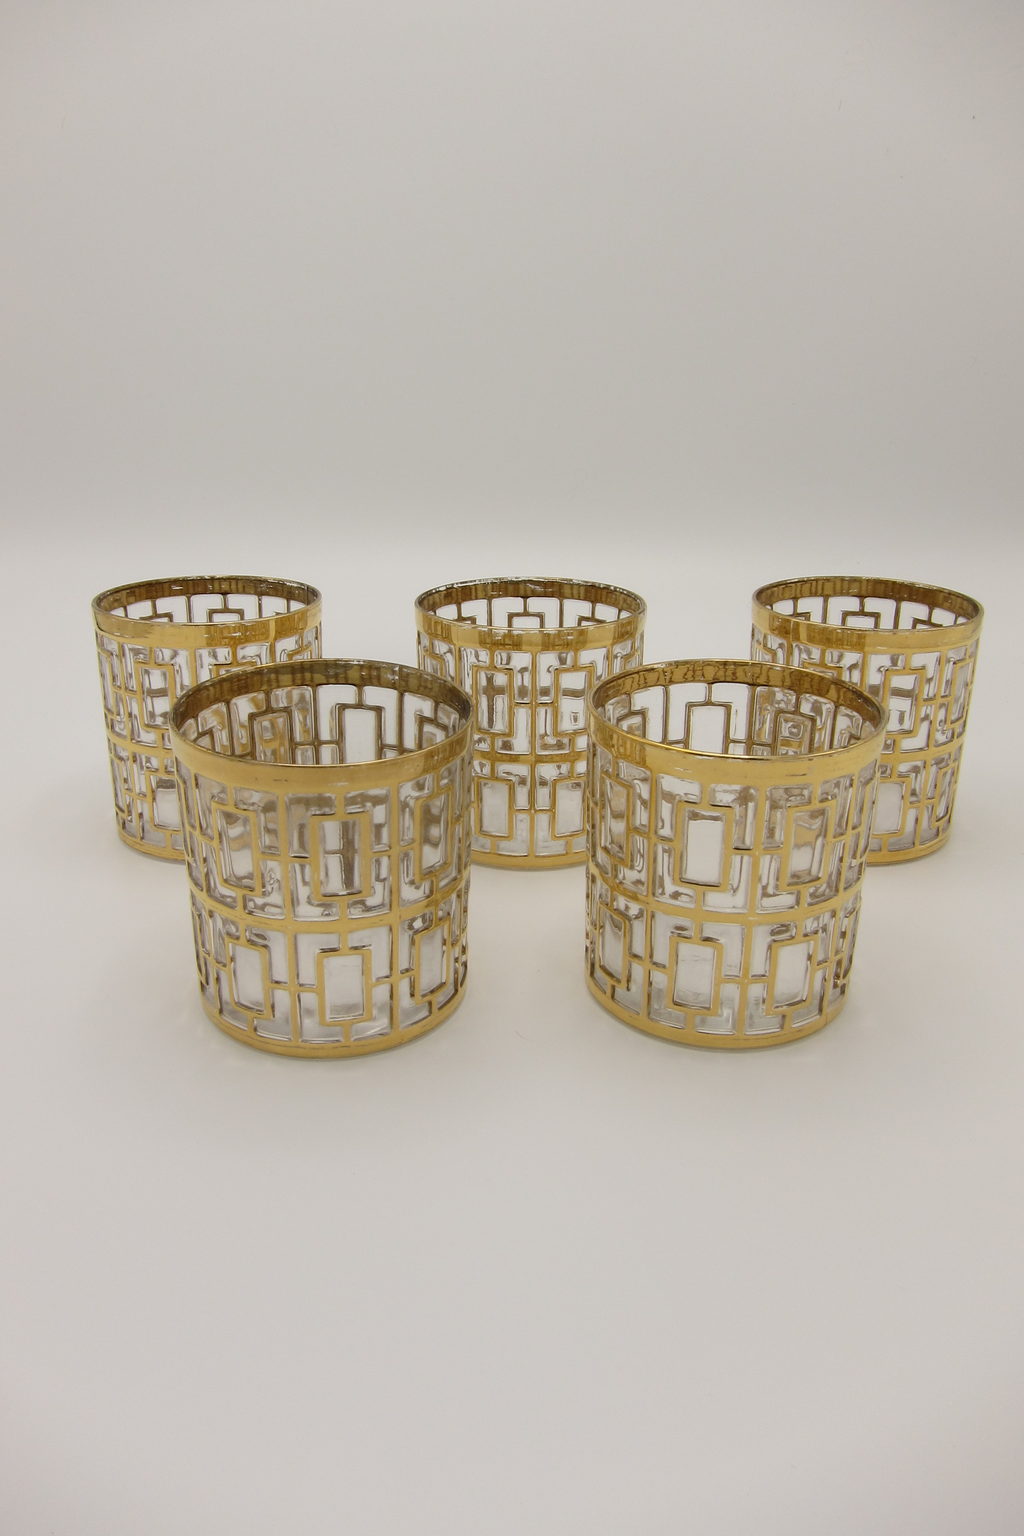 Vintage 22k Gold-Plated Shoji Trellis Rocks Glasses Imperial Glassware